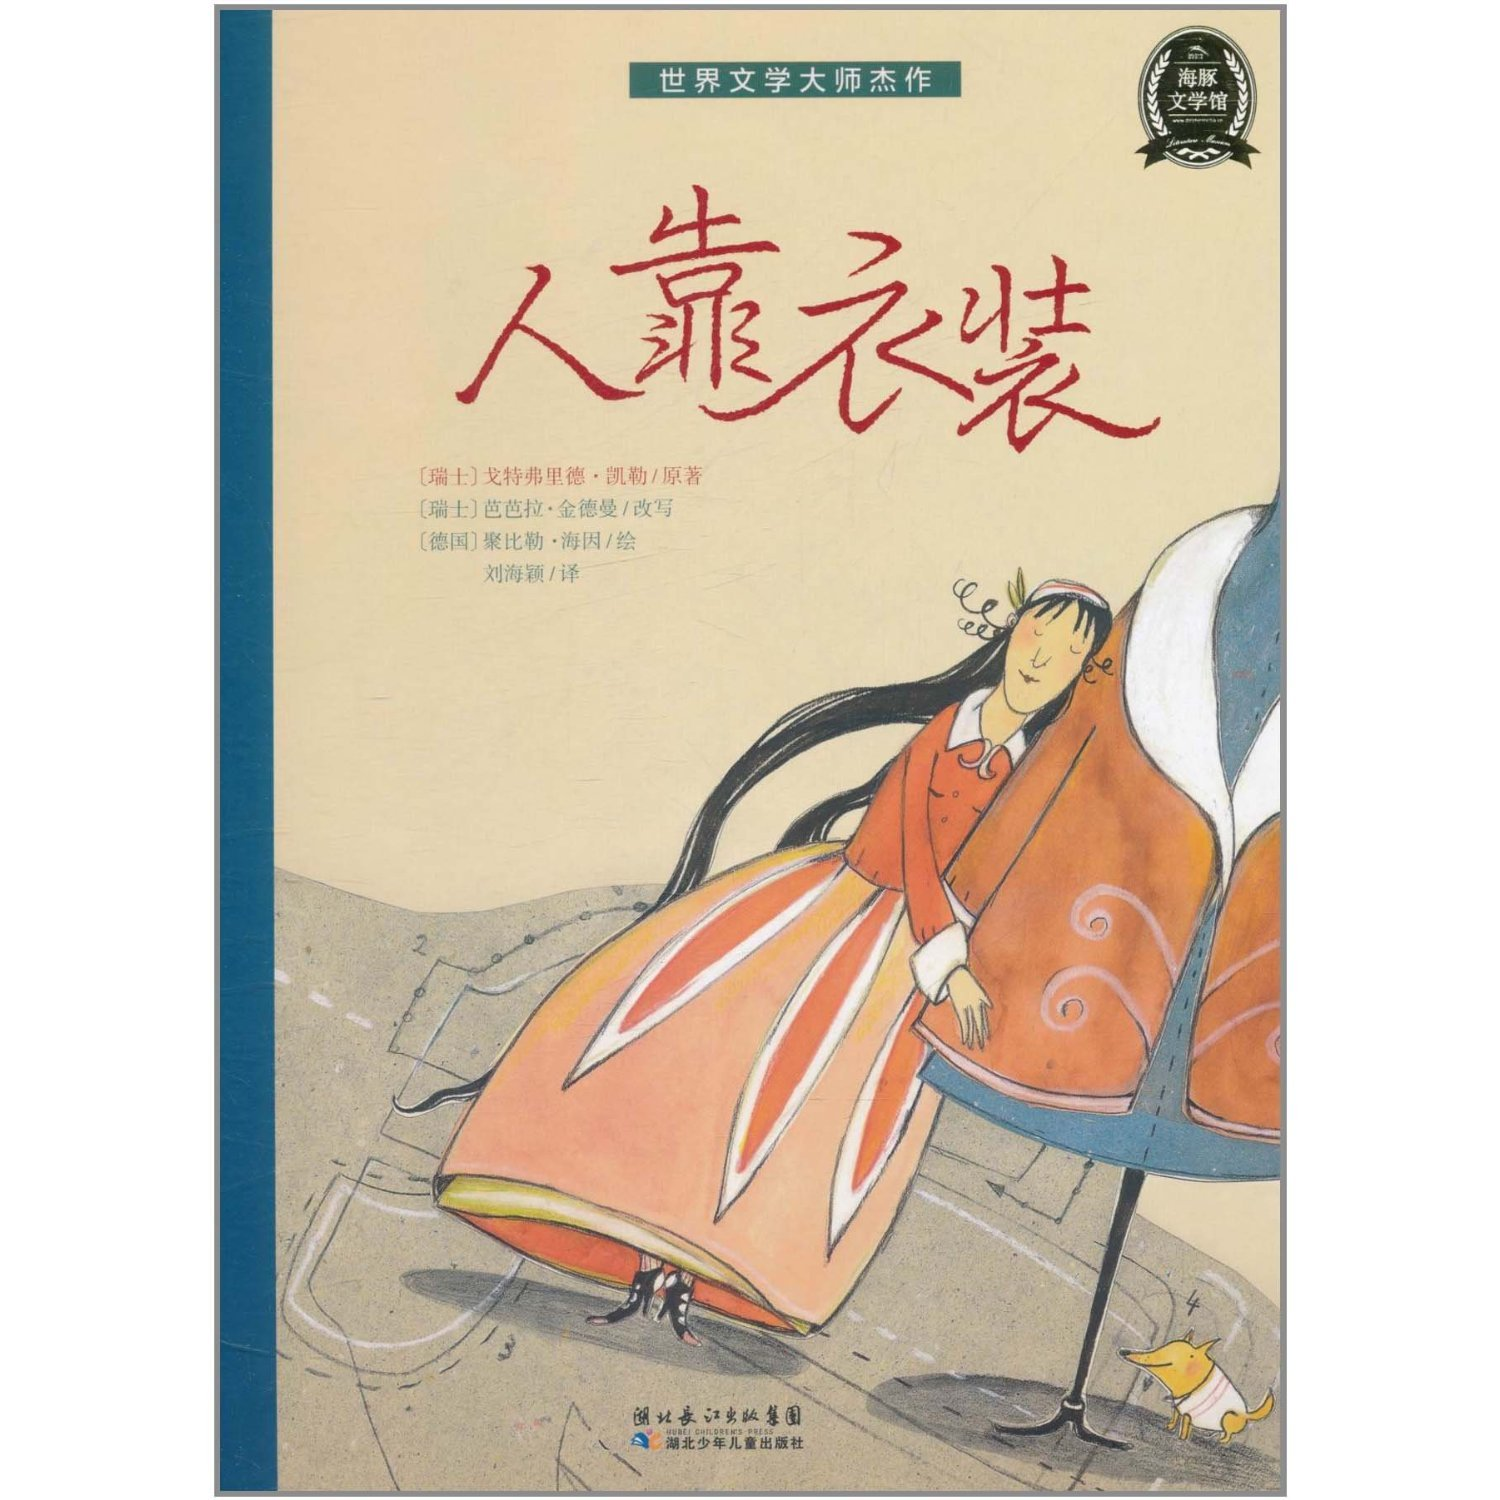 Download The Clothes Make The Man (Fine)/ Masterpiece Of World Literature Master (Chinese Edition) PDF